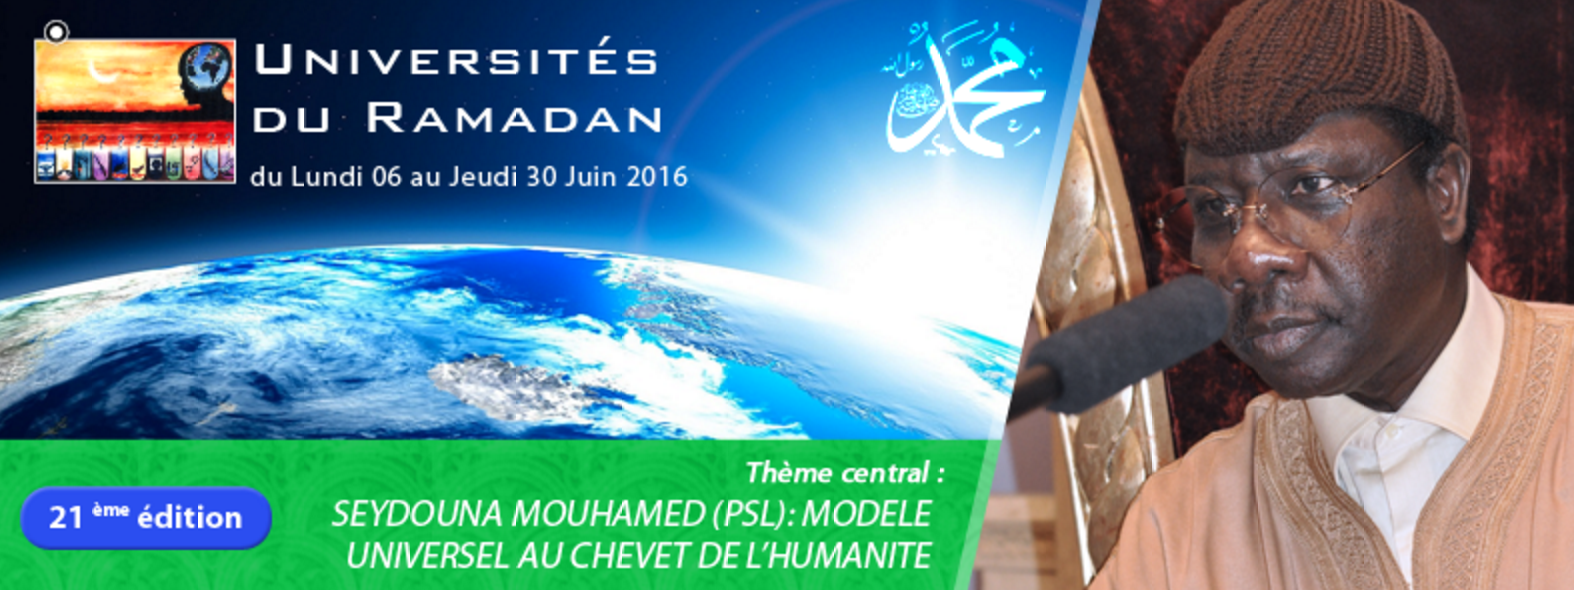 LIVE VIDEO - Suivez En Direct l'Université du Ramadan 2016